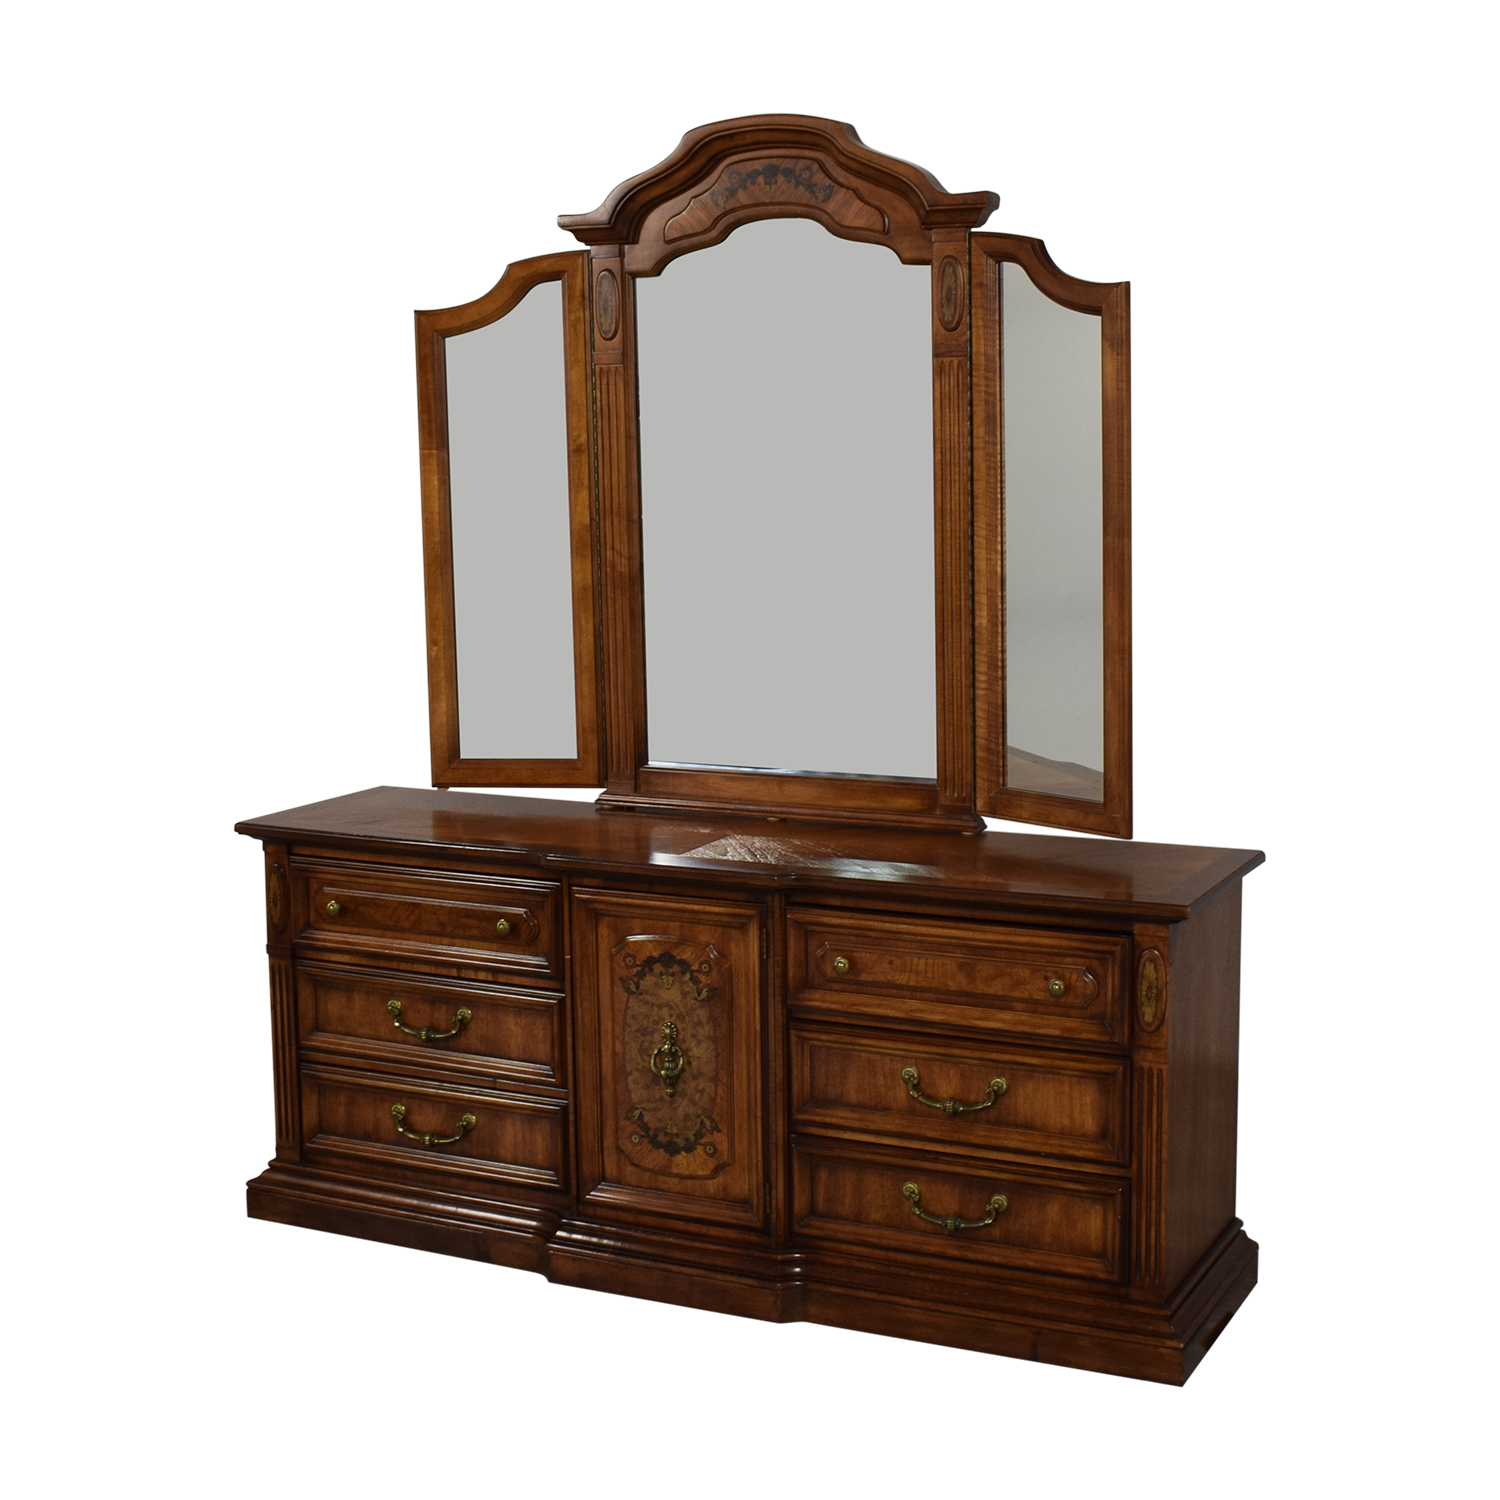 shop Stanley Furniture Stanley Furniture Chest Of Nine Drawers With Mirror online